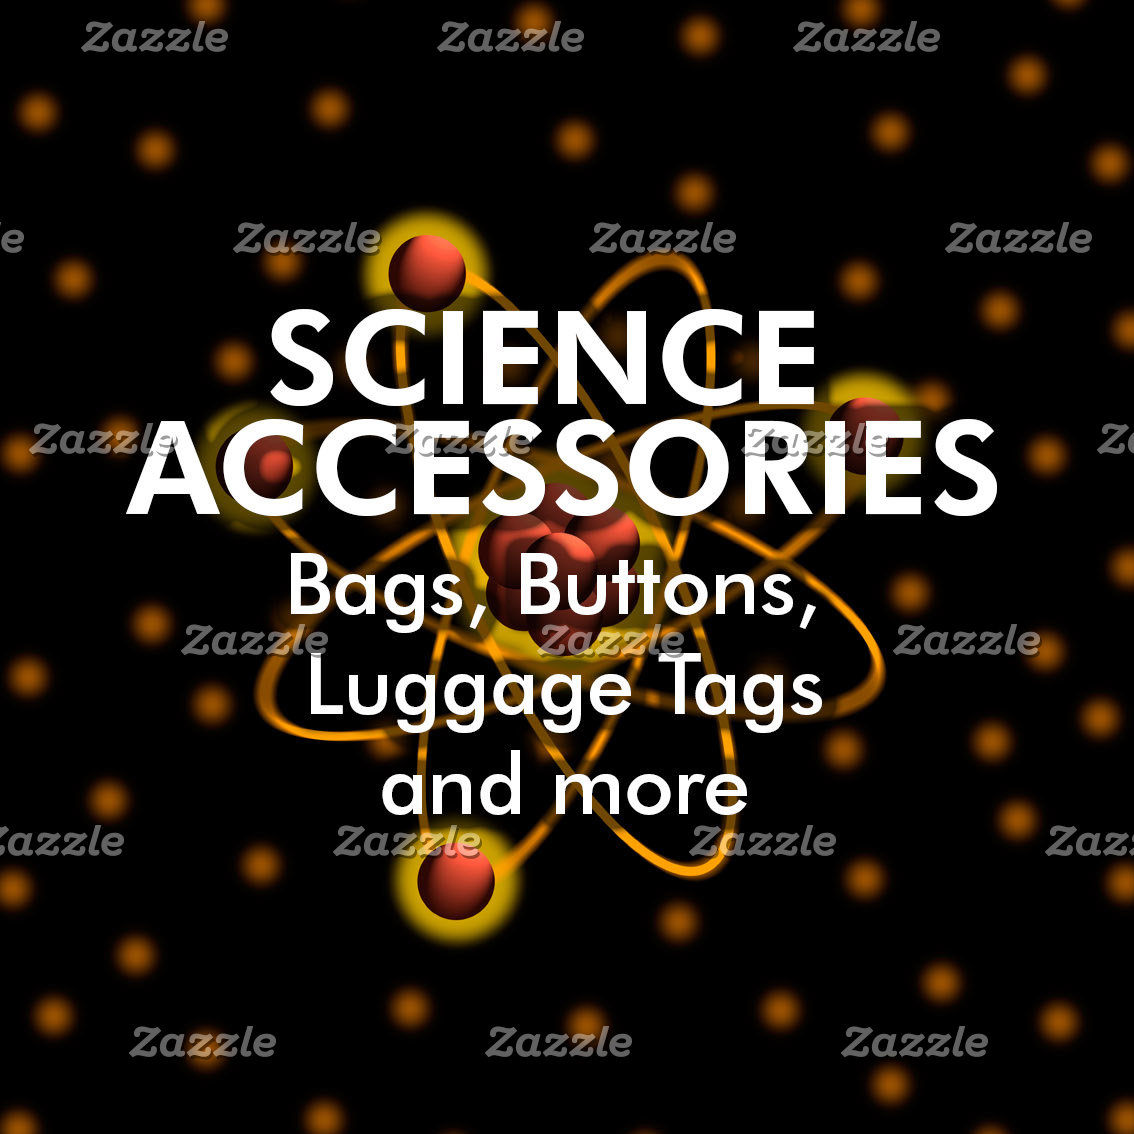 Science Accessories